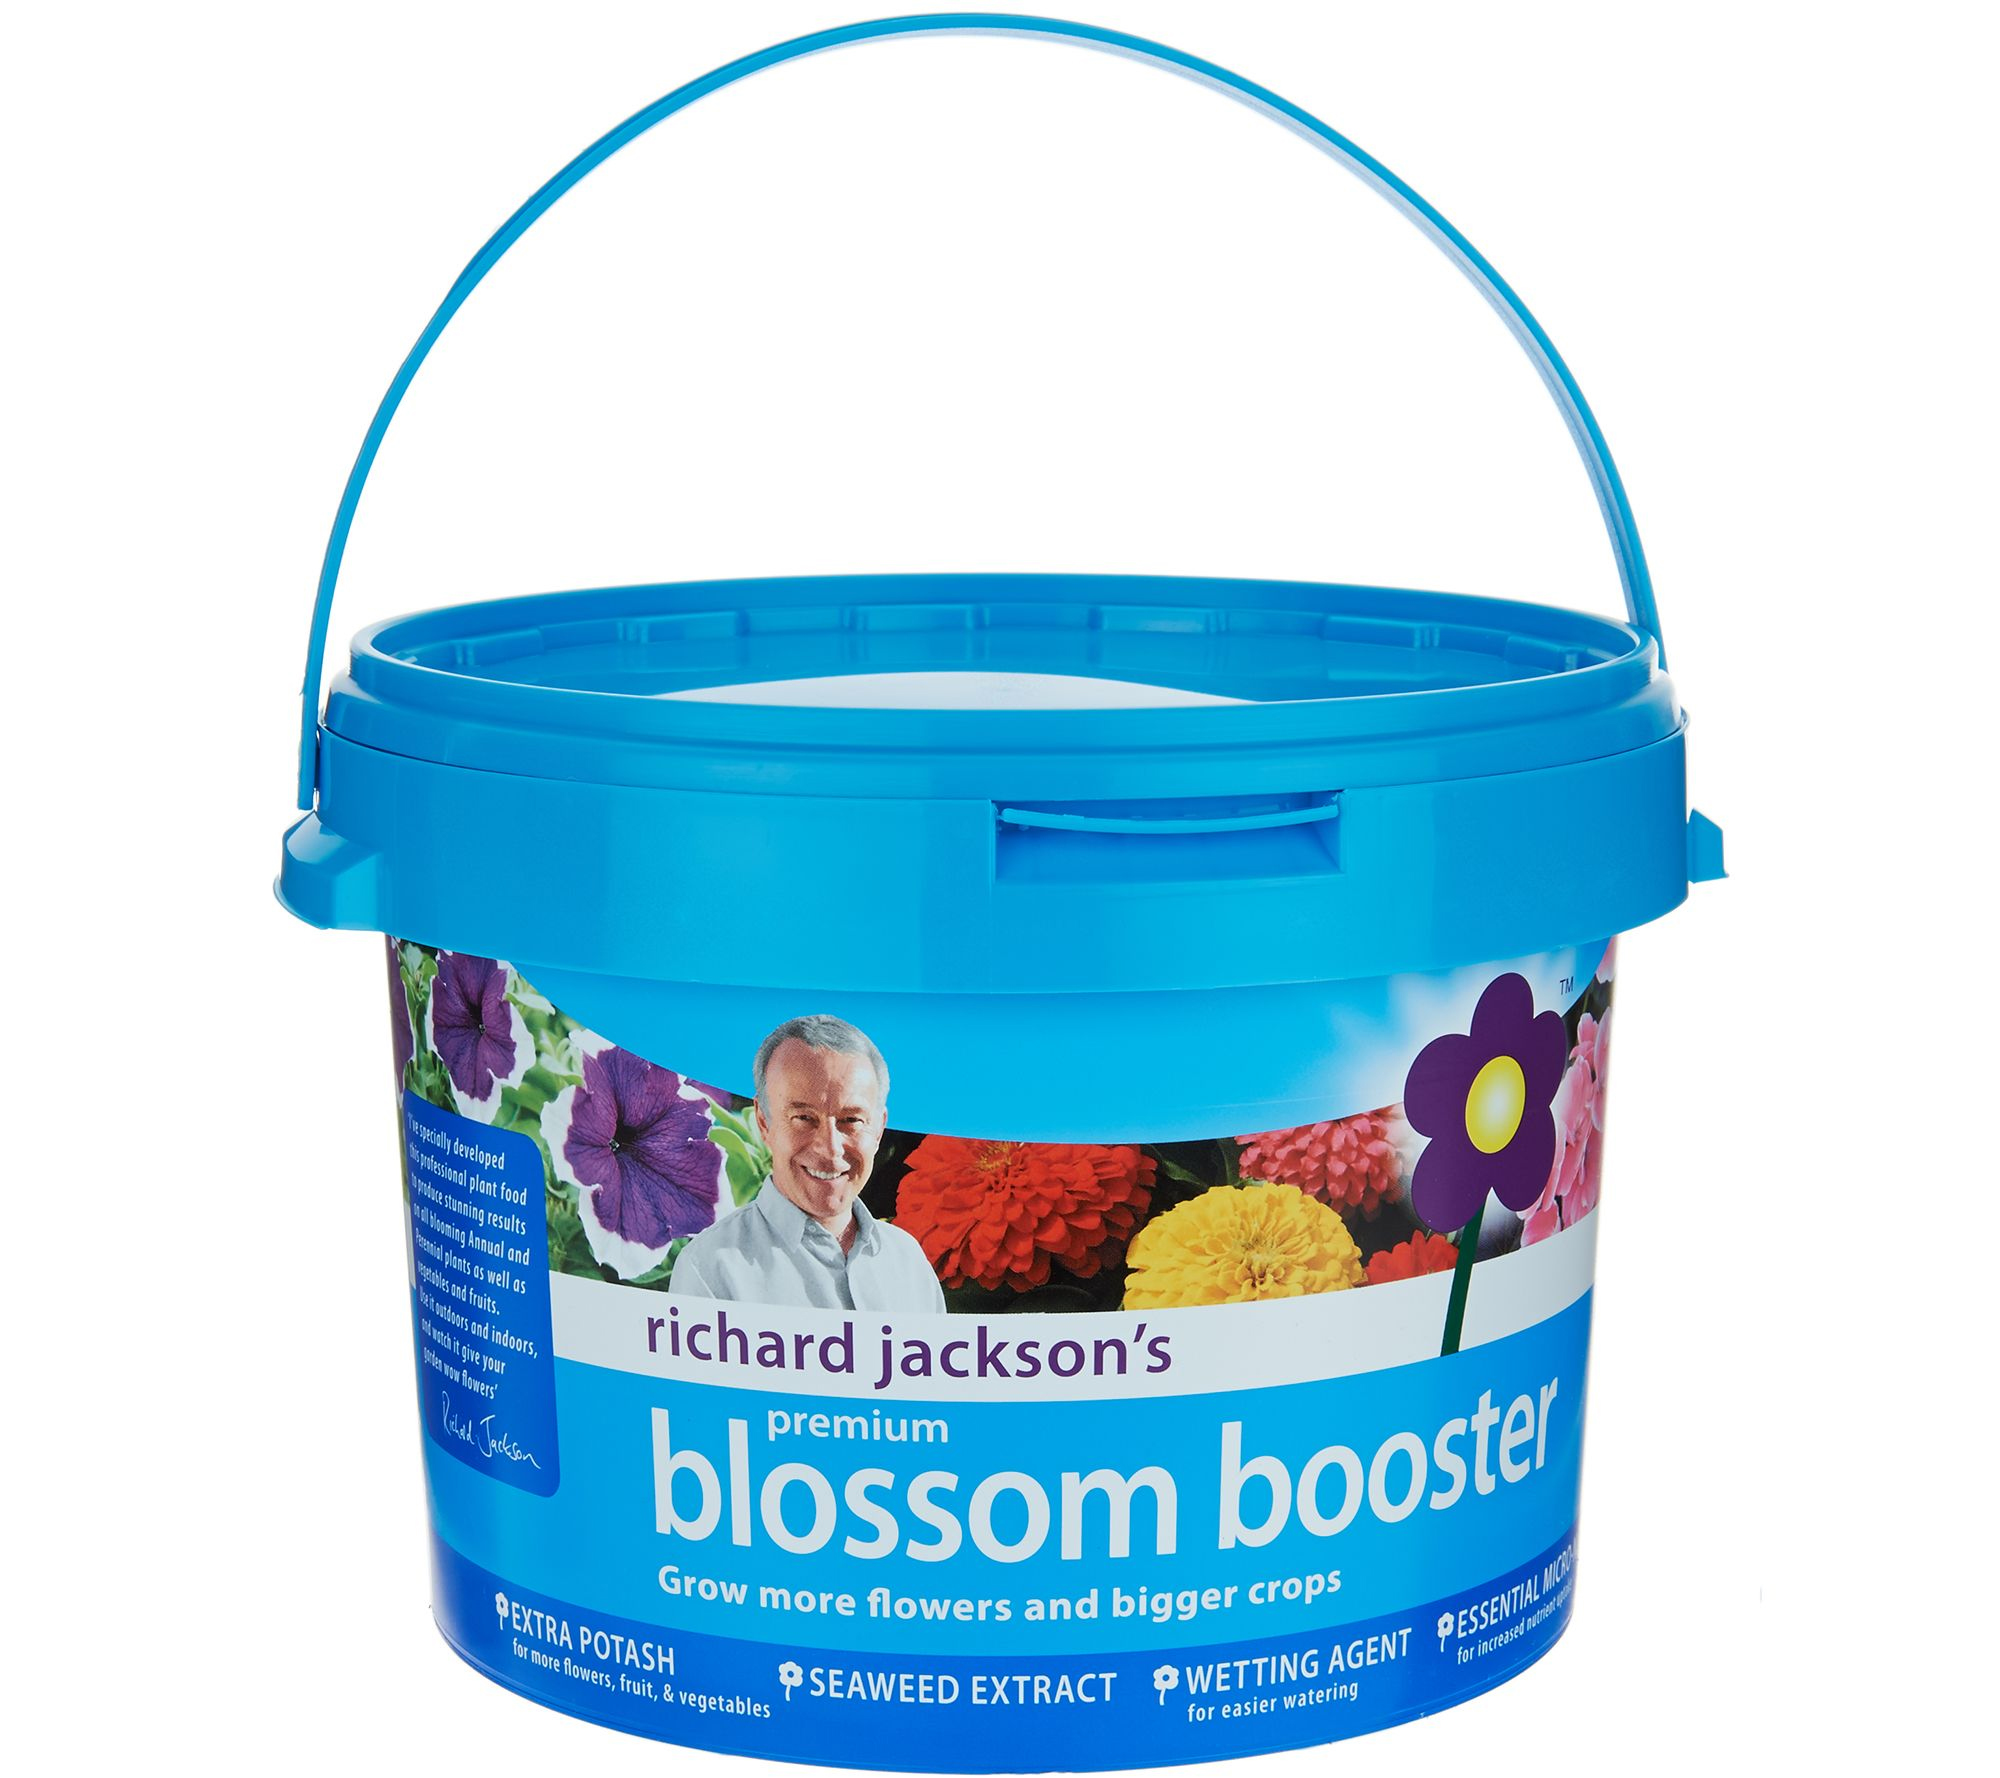 Richard Jacksons Blossom Booster plant food the secret of